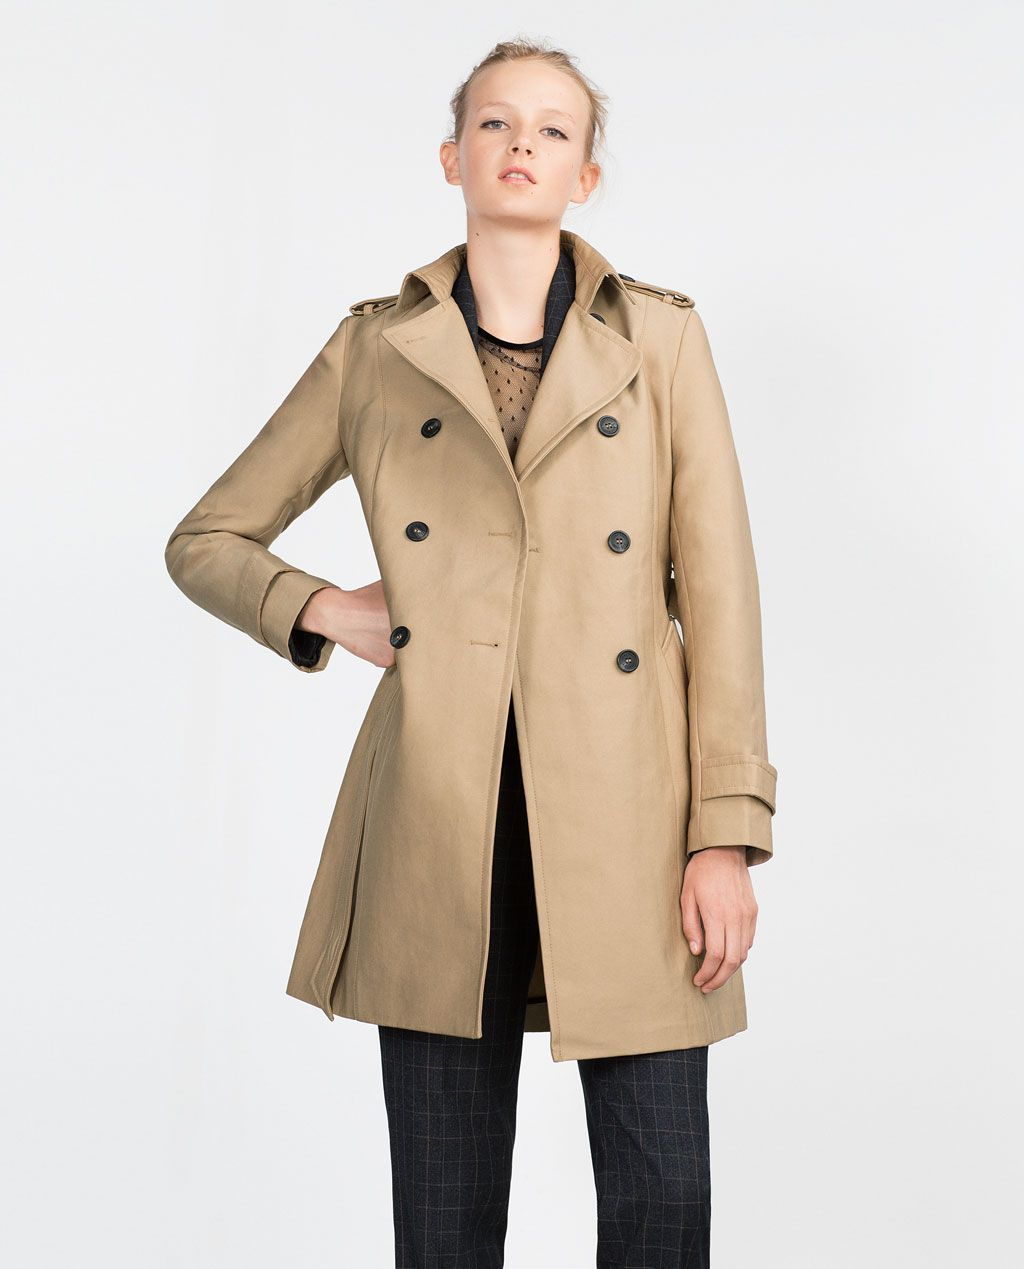 WATER REPELLENT COTTON RAINCOAT View all Outerwear WOMAN